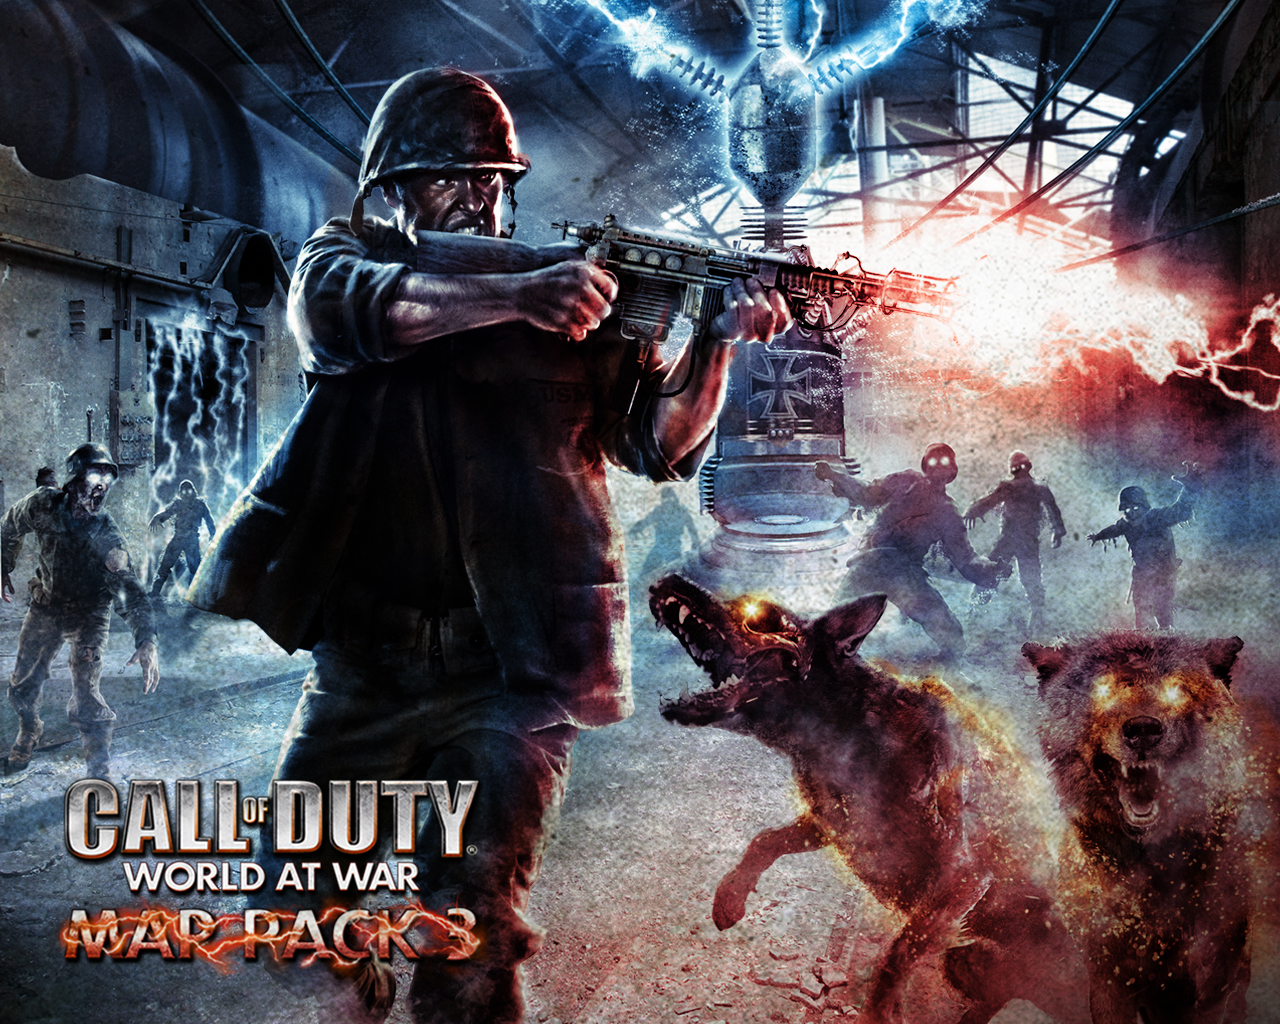 zombie-wallpaper-call-of-duty-zombies-zombie-background-1280x1024